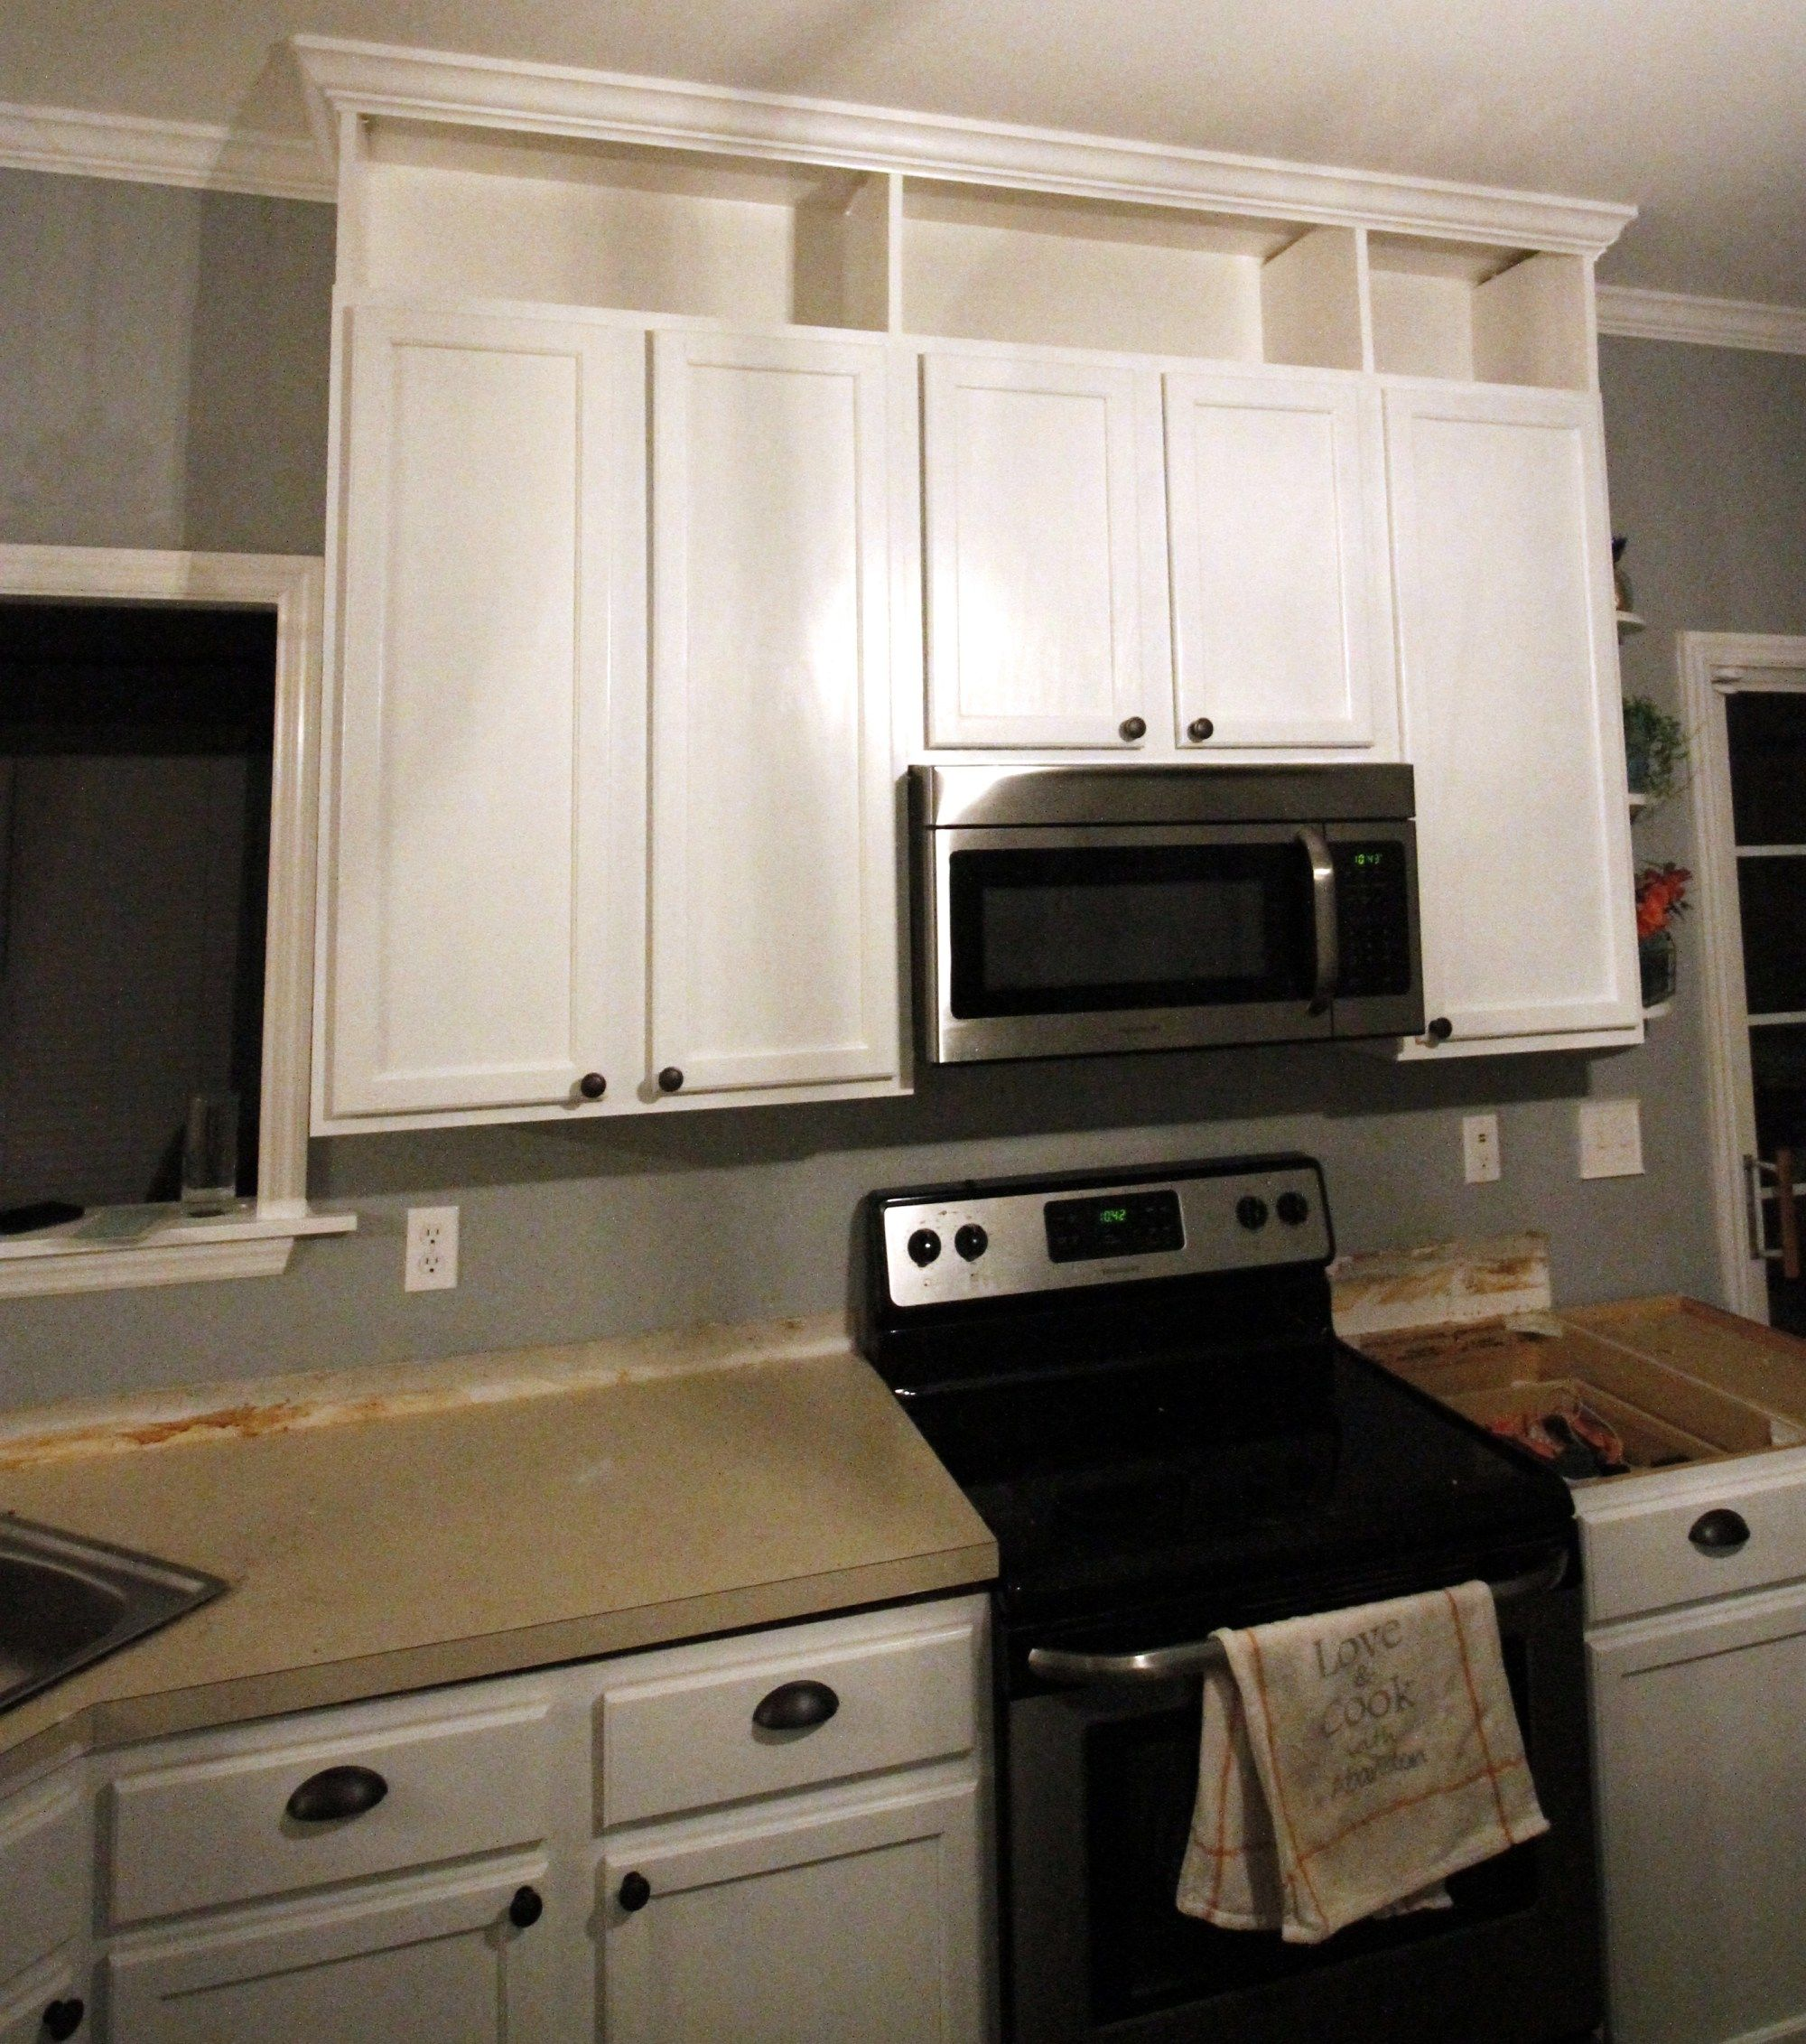 how to extend kitchen cabinets to the ceiling new kitchen cabinets kitchen cabinets to on kitchen cabinets to the ceiling id=33292